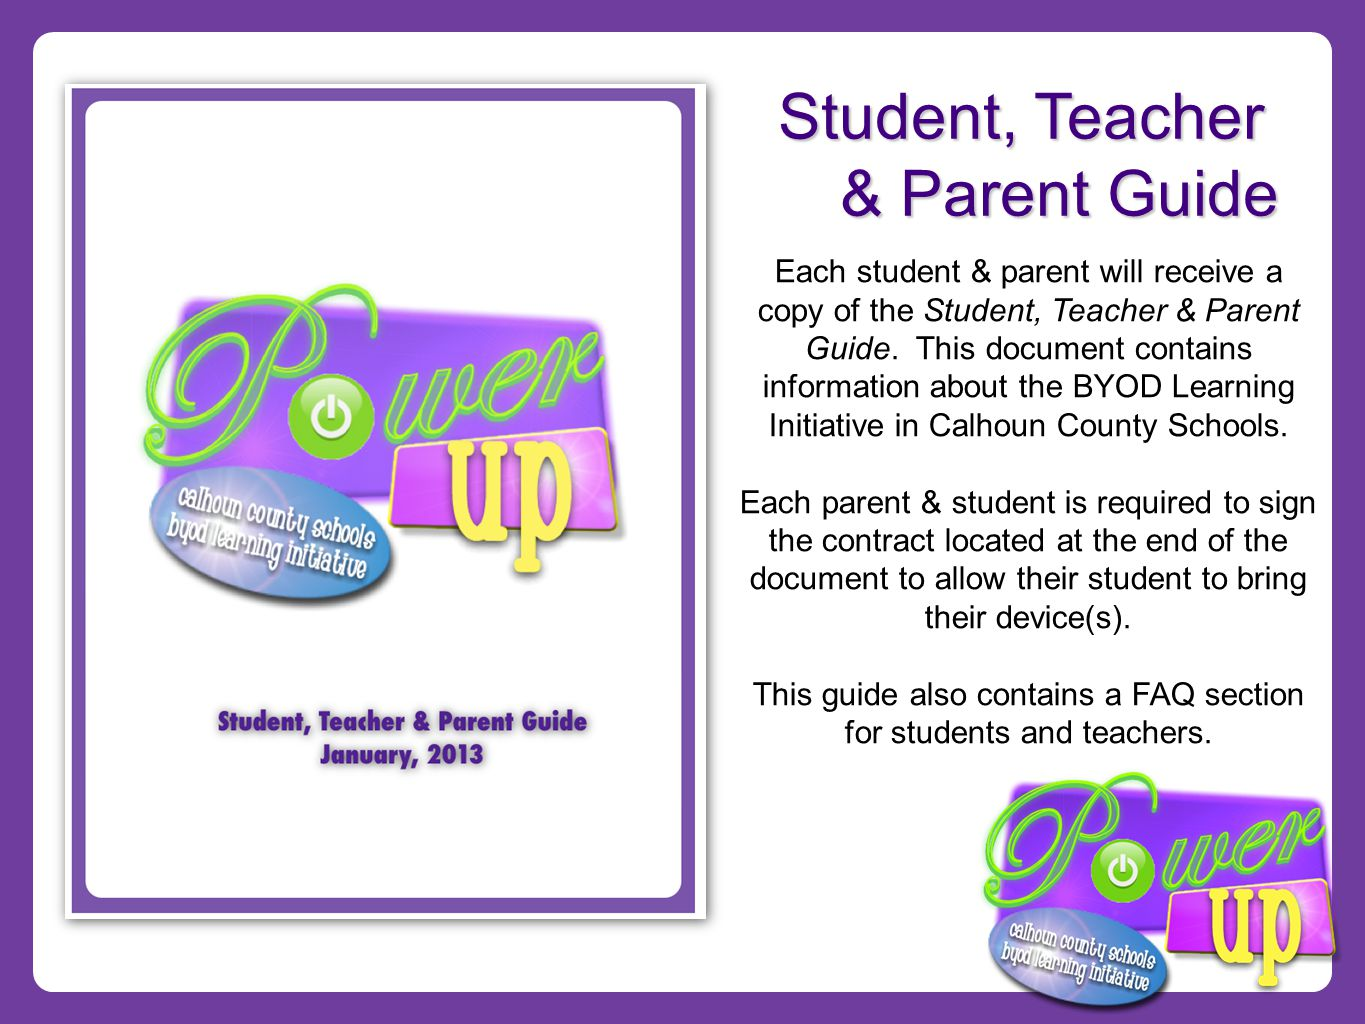 Student, Teacher & Parent Guide Each student & parent will receive a copy of the Student, Teacher & Parent Guide.